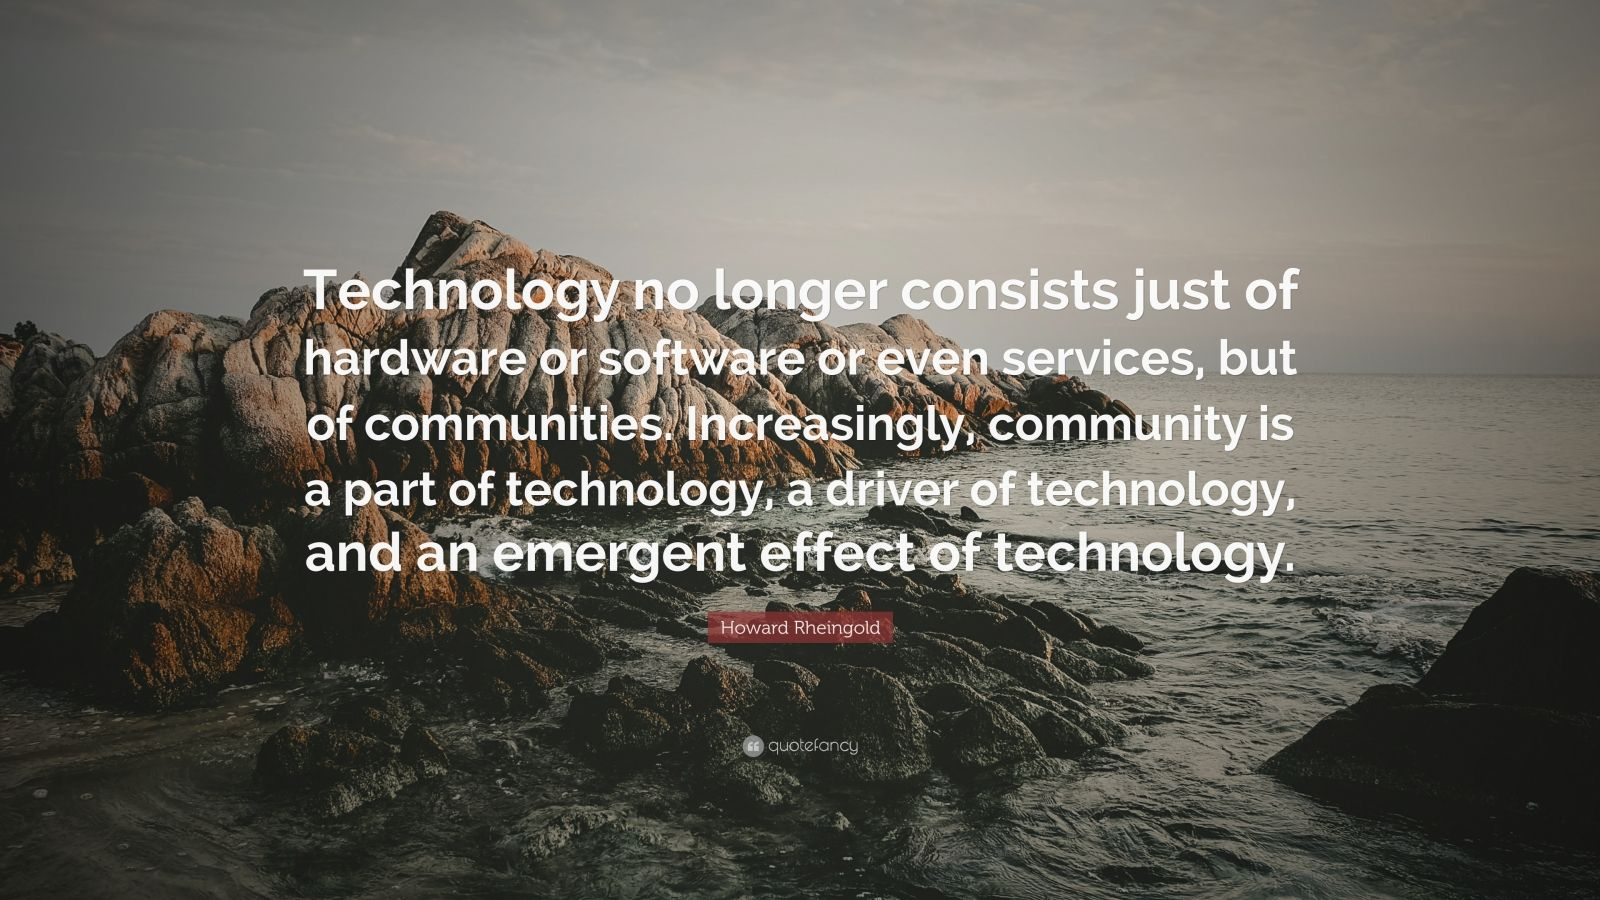 """Howard Rheingold Quote: """"Technology no longer consists just of hardware or software or even services, but of communities. Increasingly, community is a part of technology, a driver of technology, and an emergent effect of technology."""""""